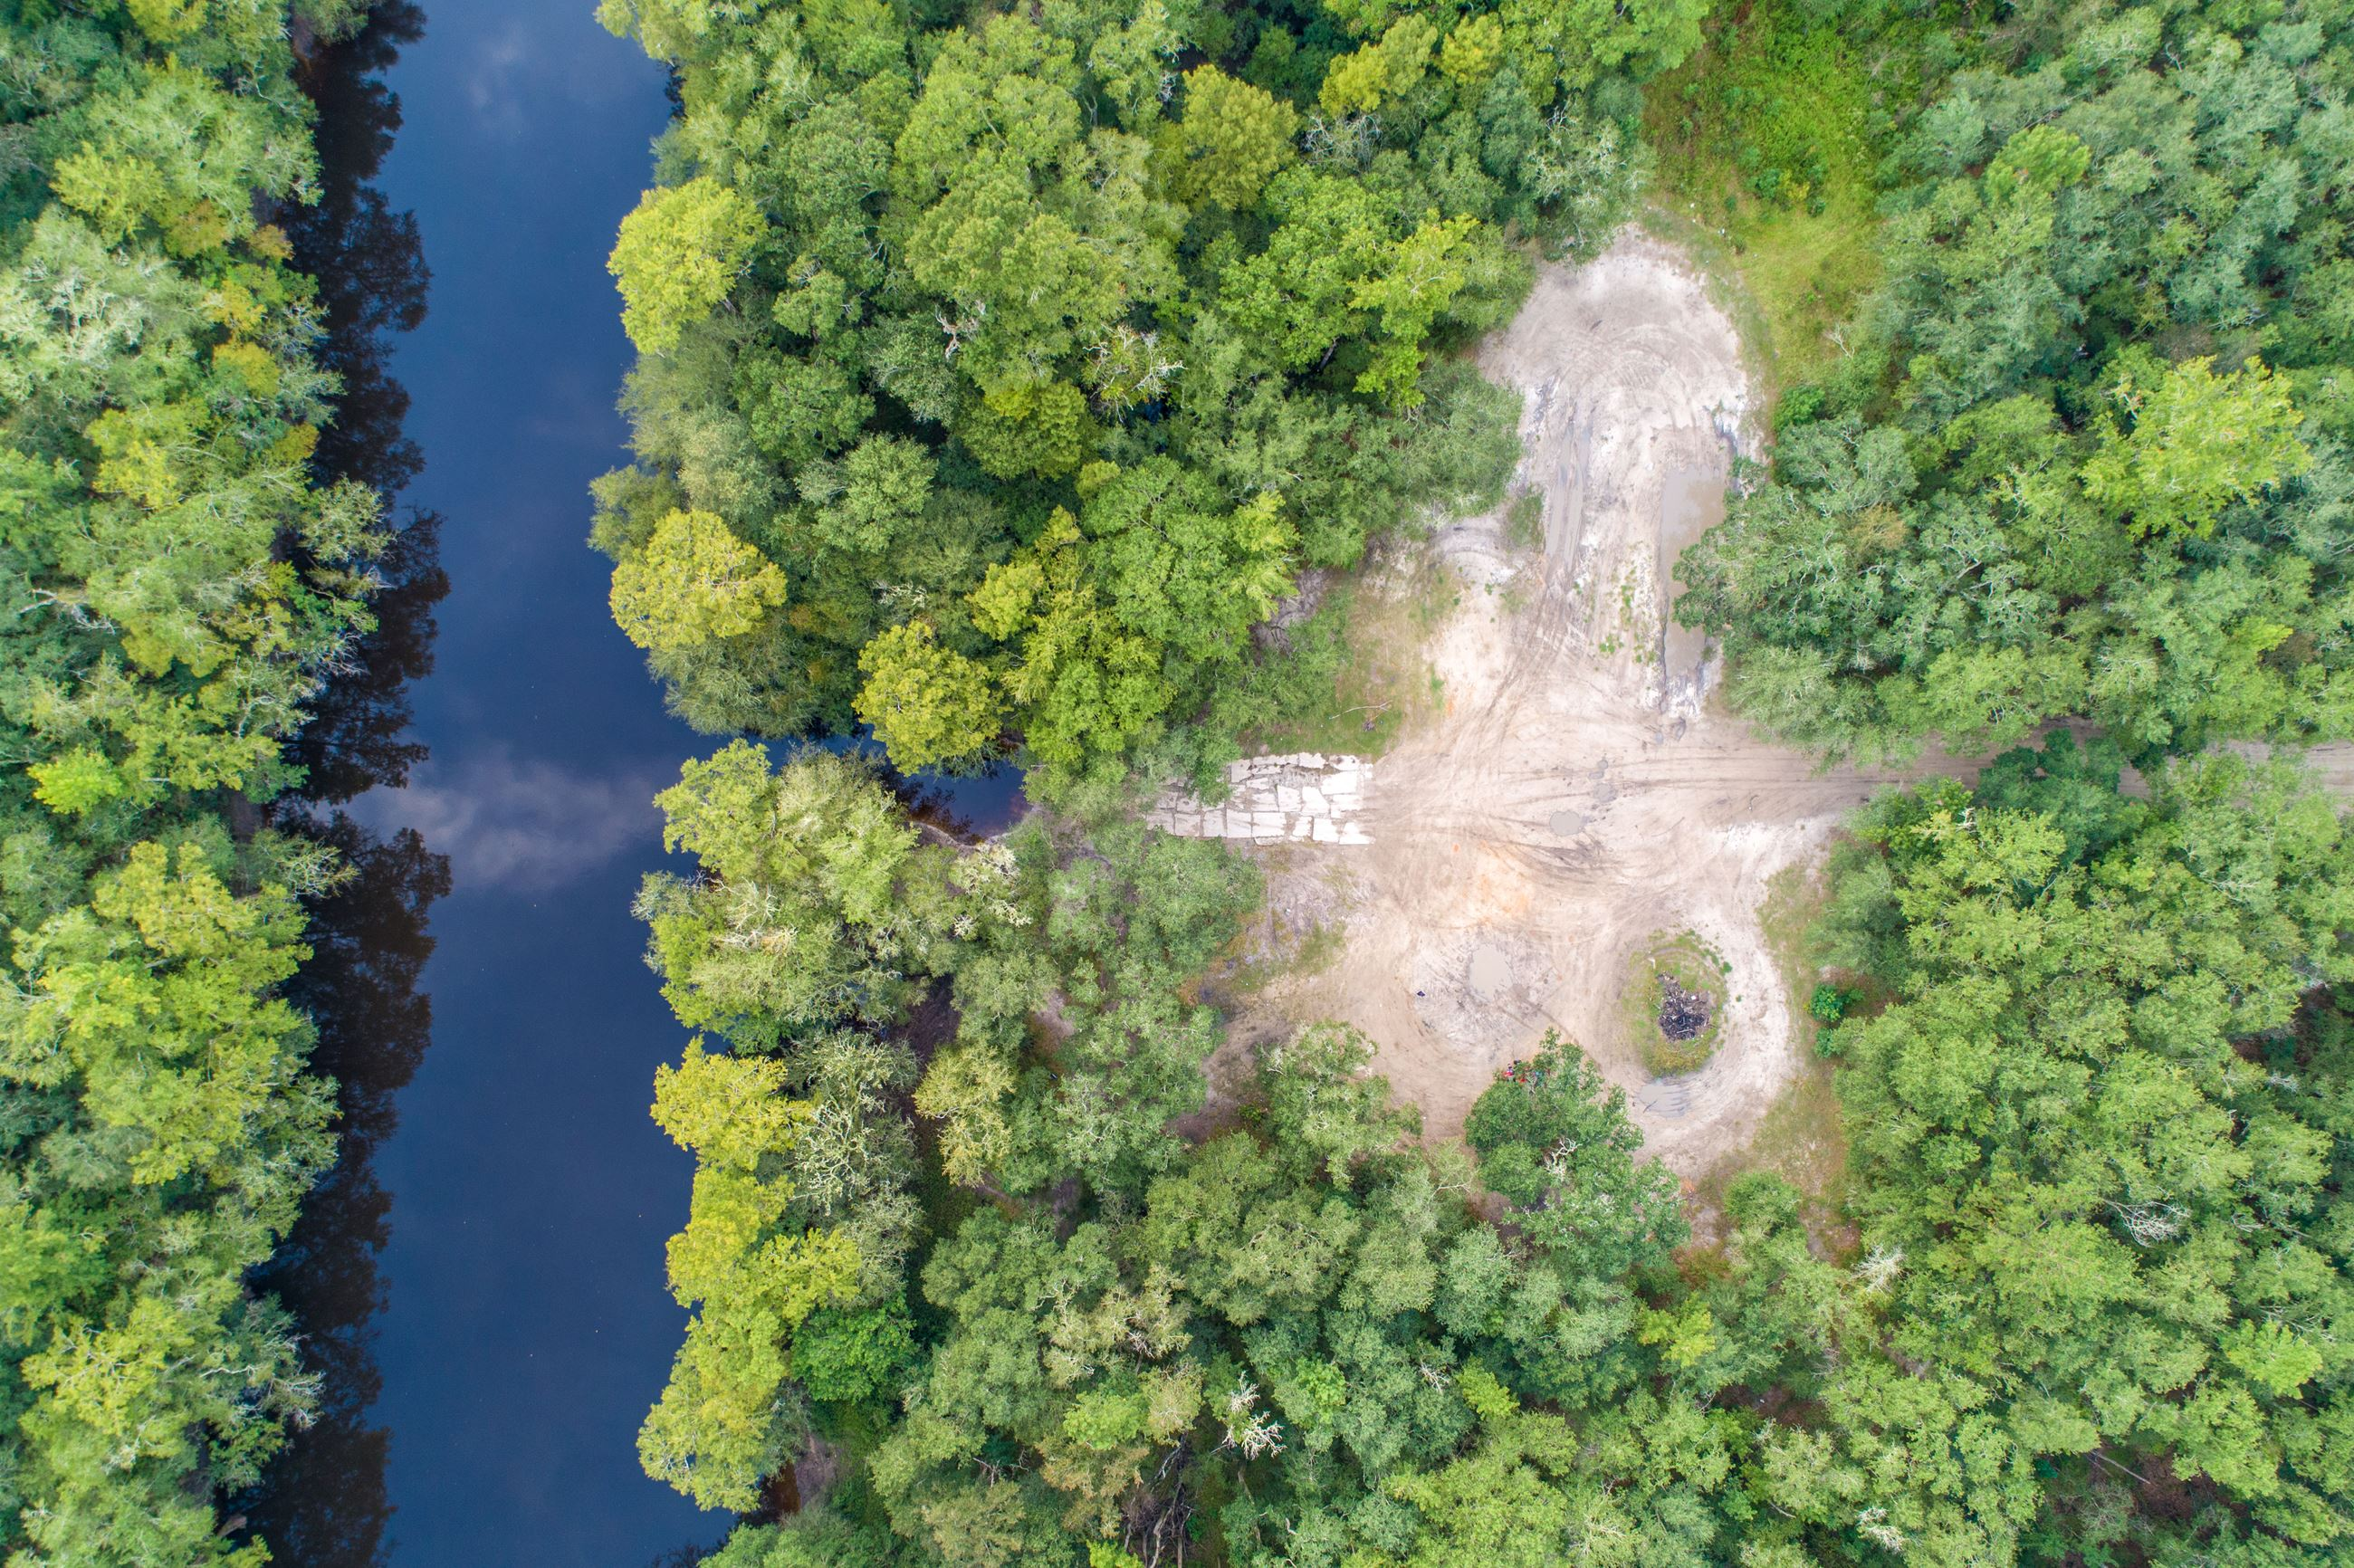 Image of an aerial view of a river surrounded by forest.